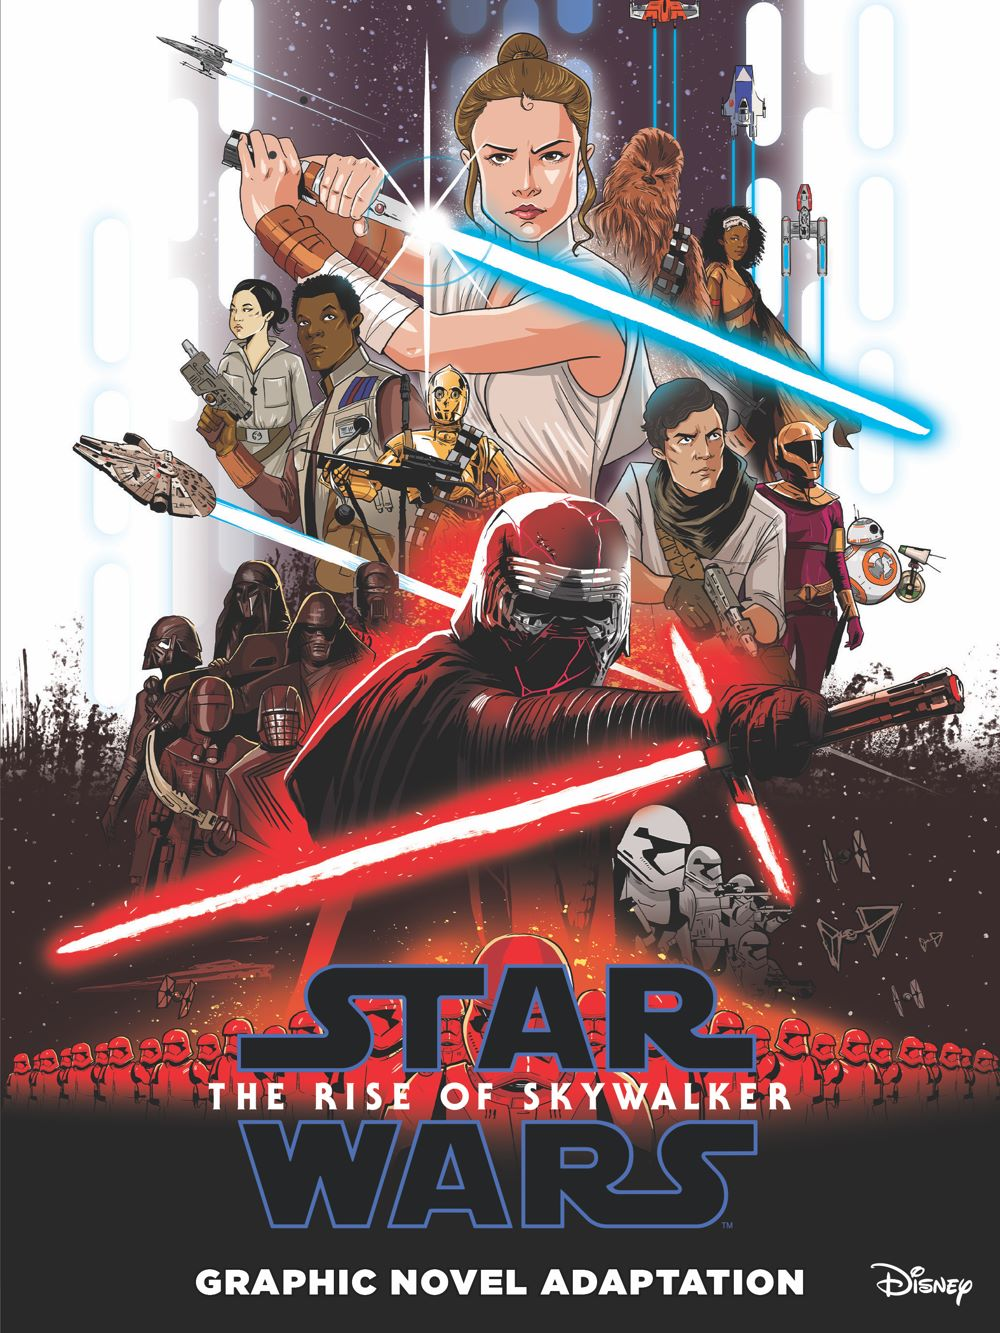 StarWars_IX_TheRiseOfSkywalker_Cover-2 ComicList Previews: STAR WARS THE RISE OF SKYWALKER GN